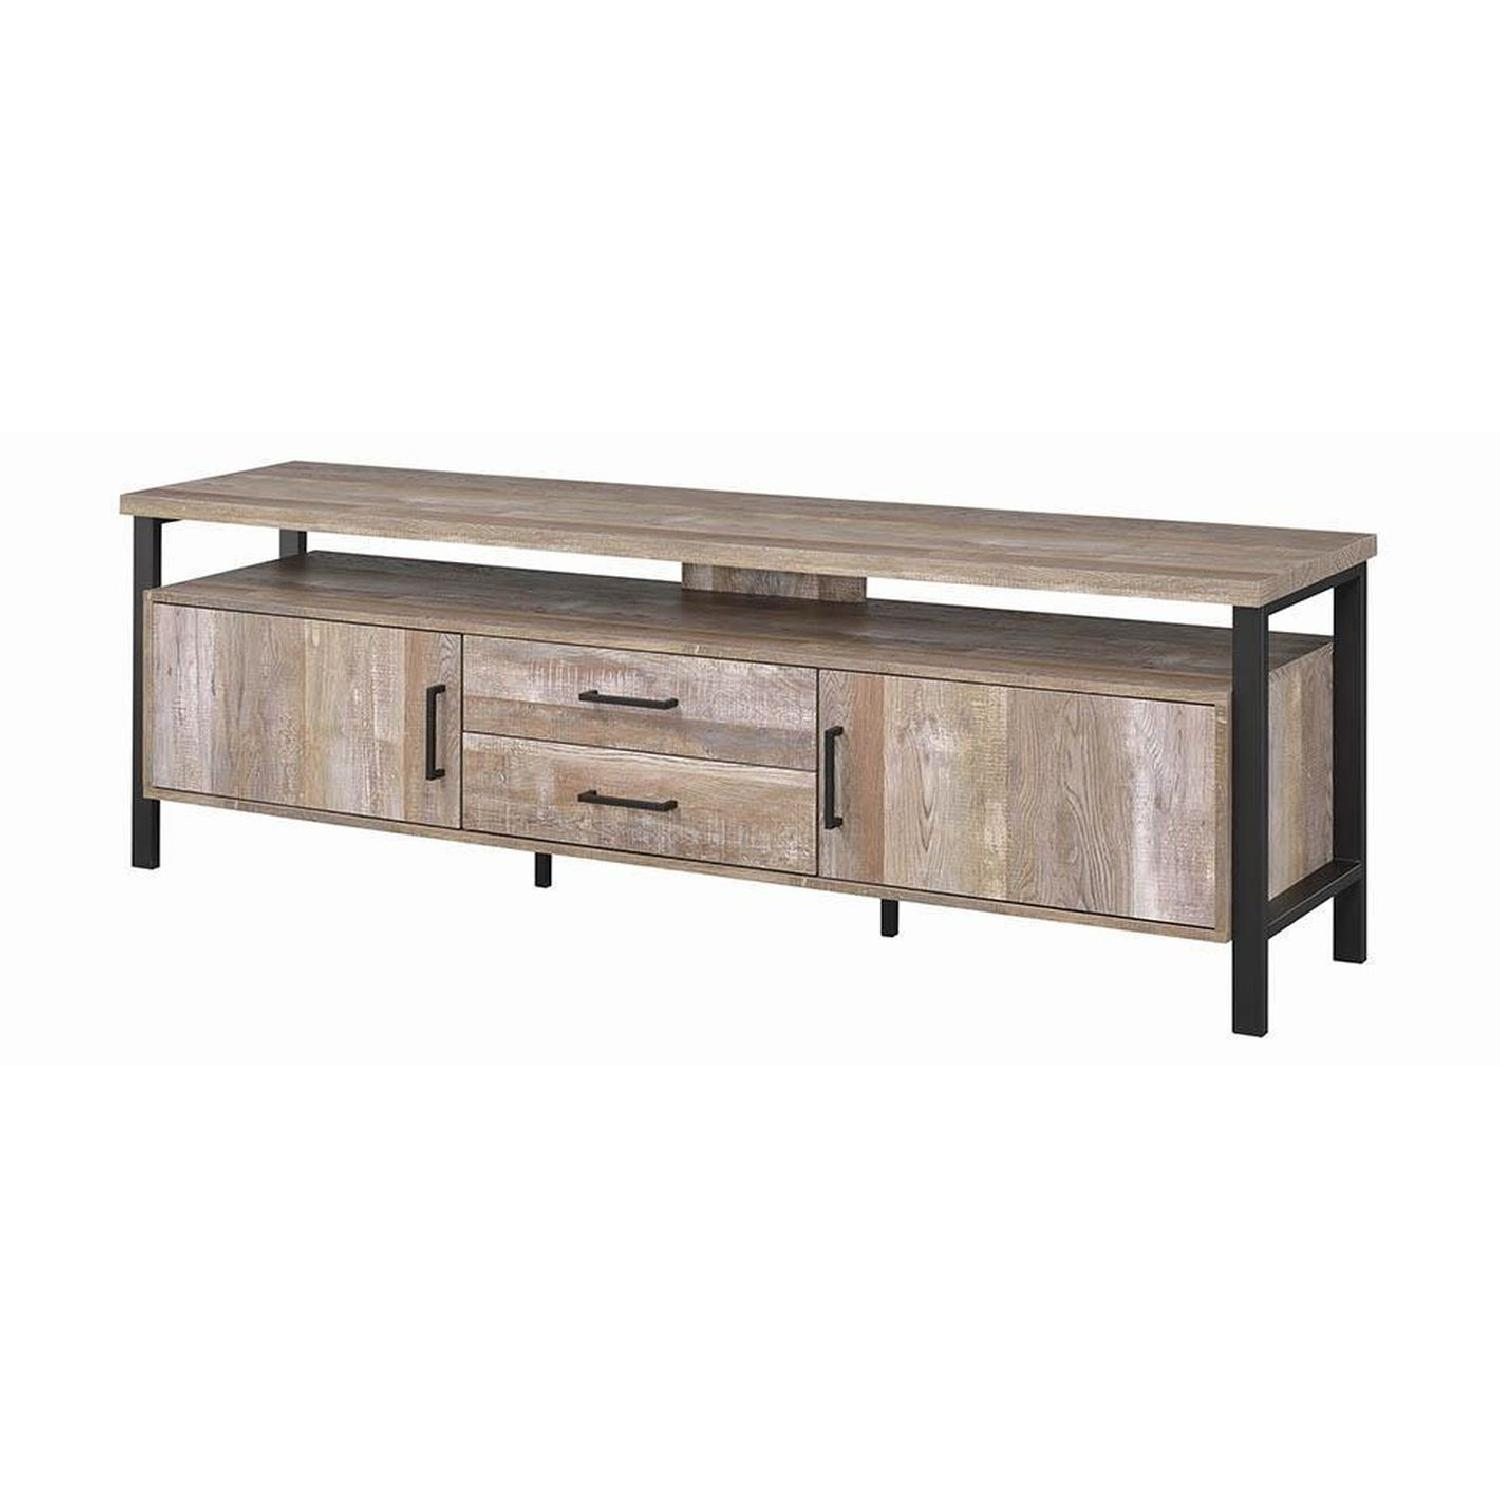 TV Stand In Rustic Oak Finish w/ 2 Cabinets & 2 Drawers - image-14